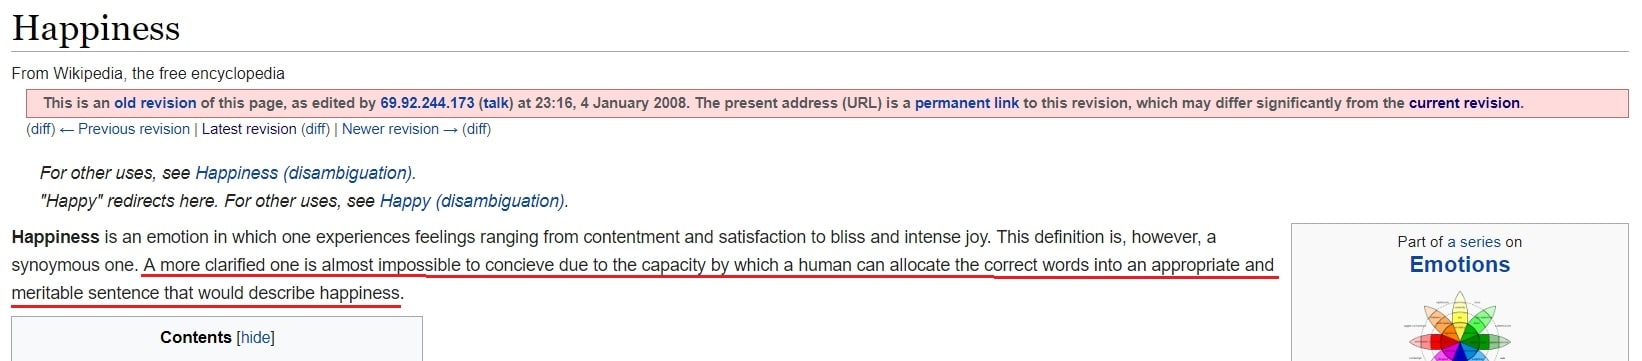 happiness wikipedia definition 2008